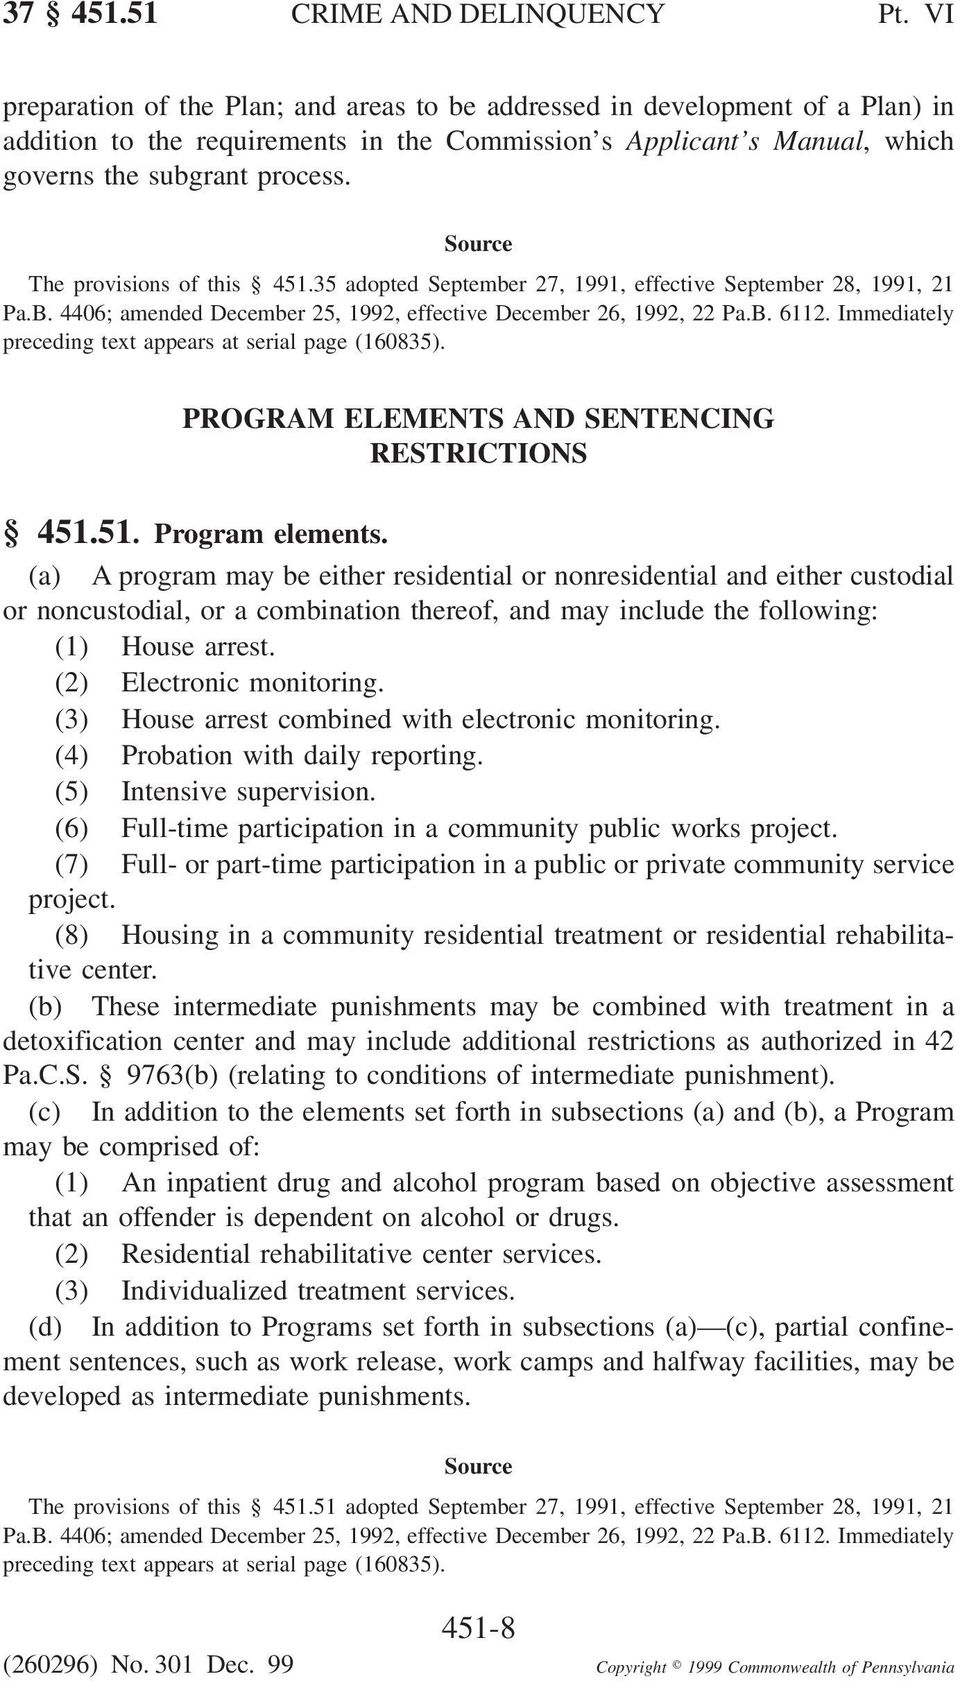 The provisions of this 451.35 adopted September 27, 1991, effective September 28, 1991, 21 preceding text appears at serial page (160835). PROGRAM ELEMENTS AND SENTENCING RESTRICTIONS 451.51. Program elements.